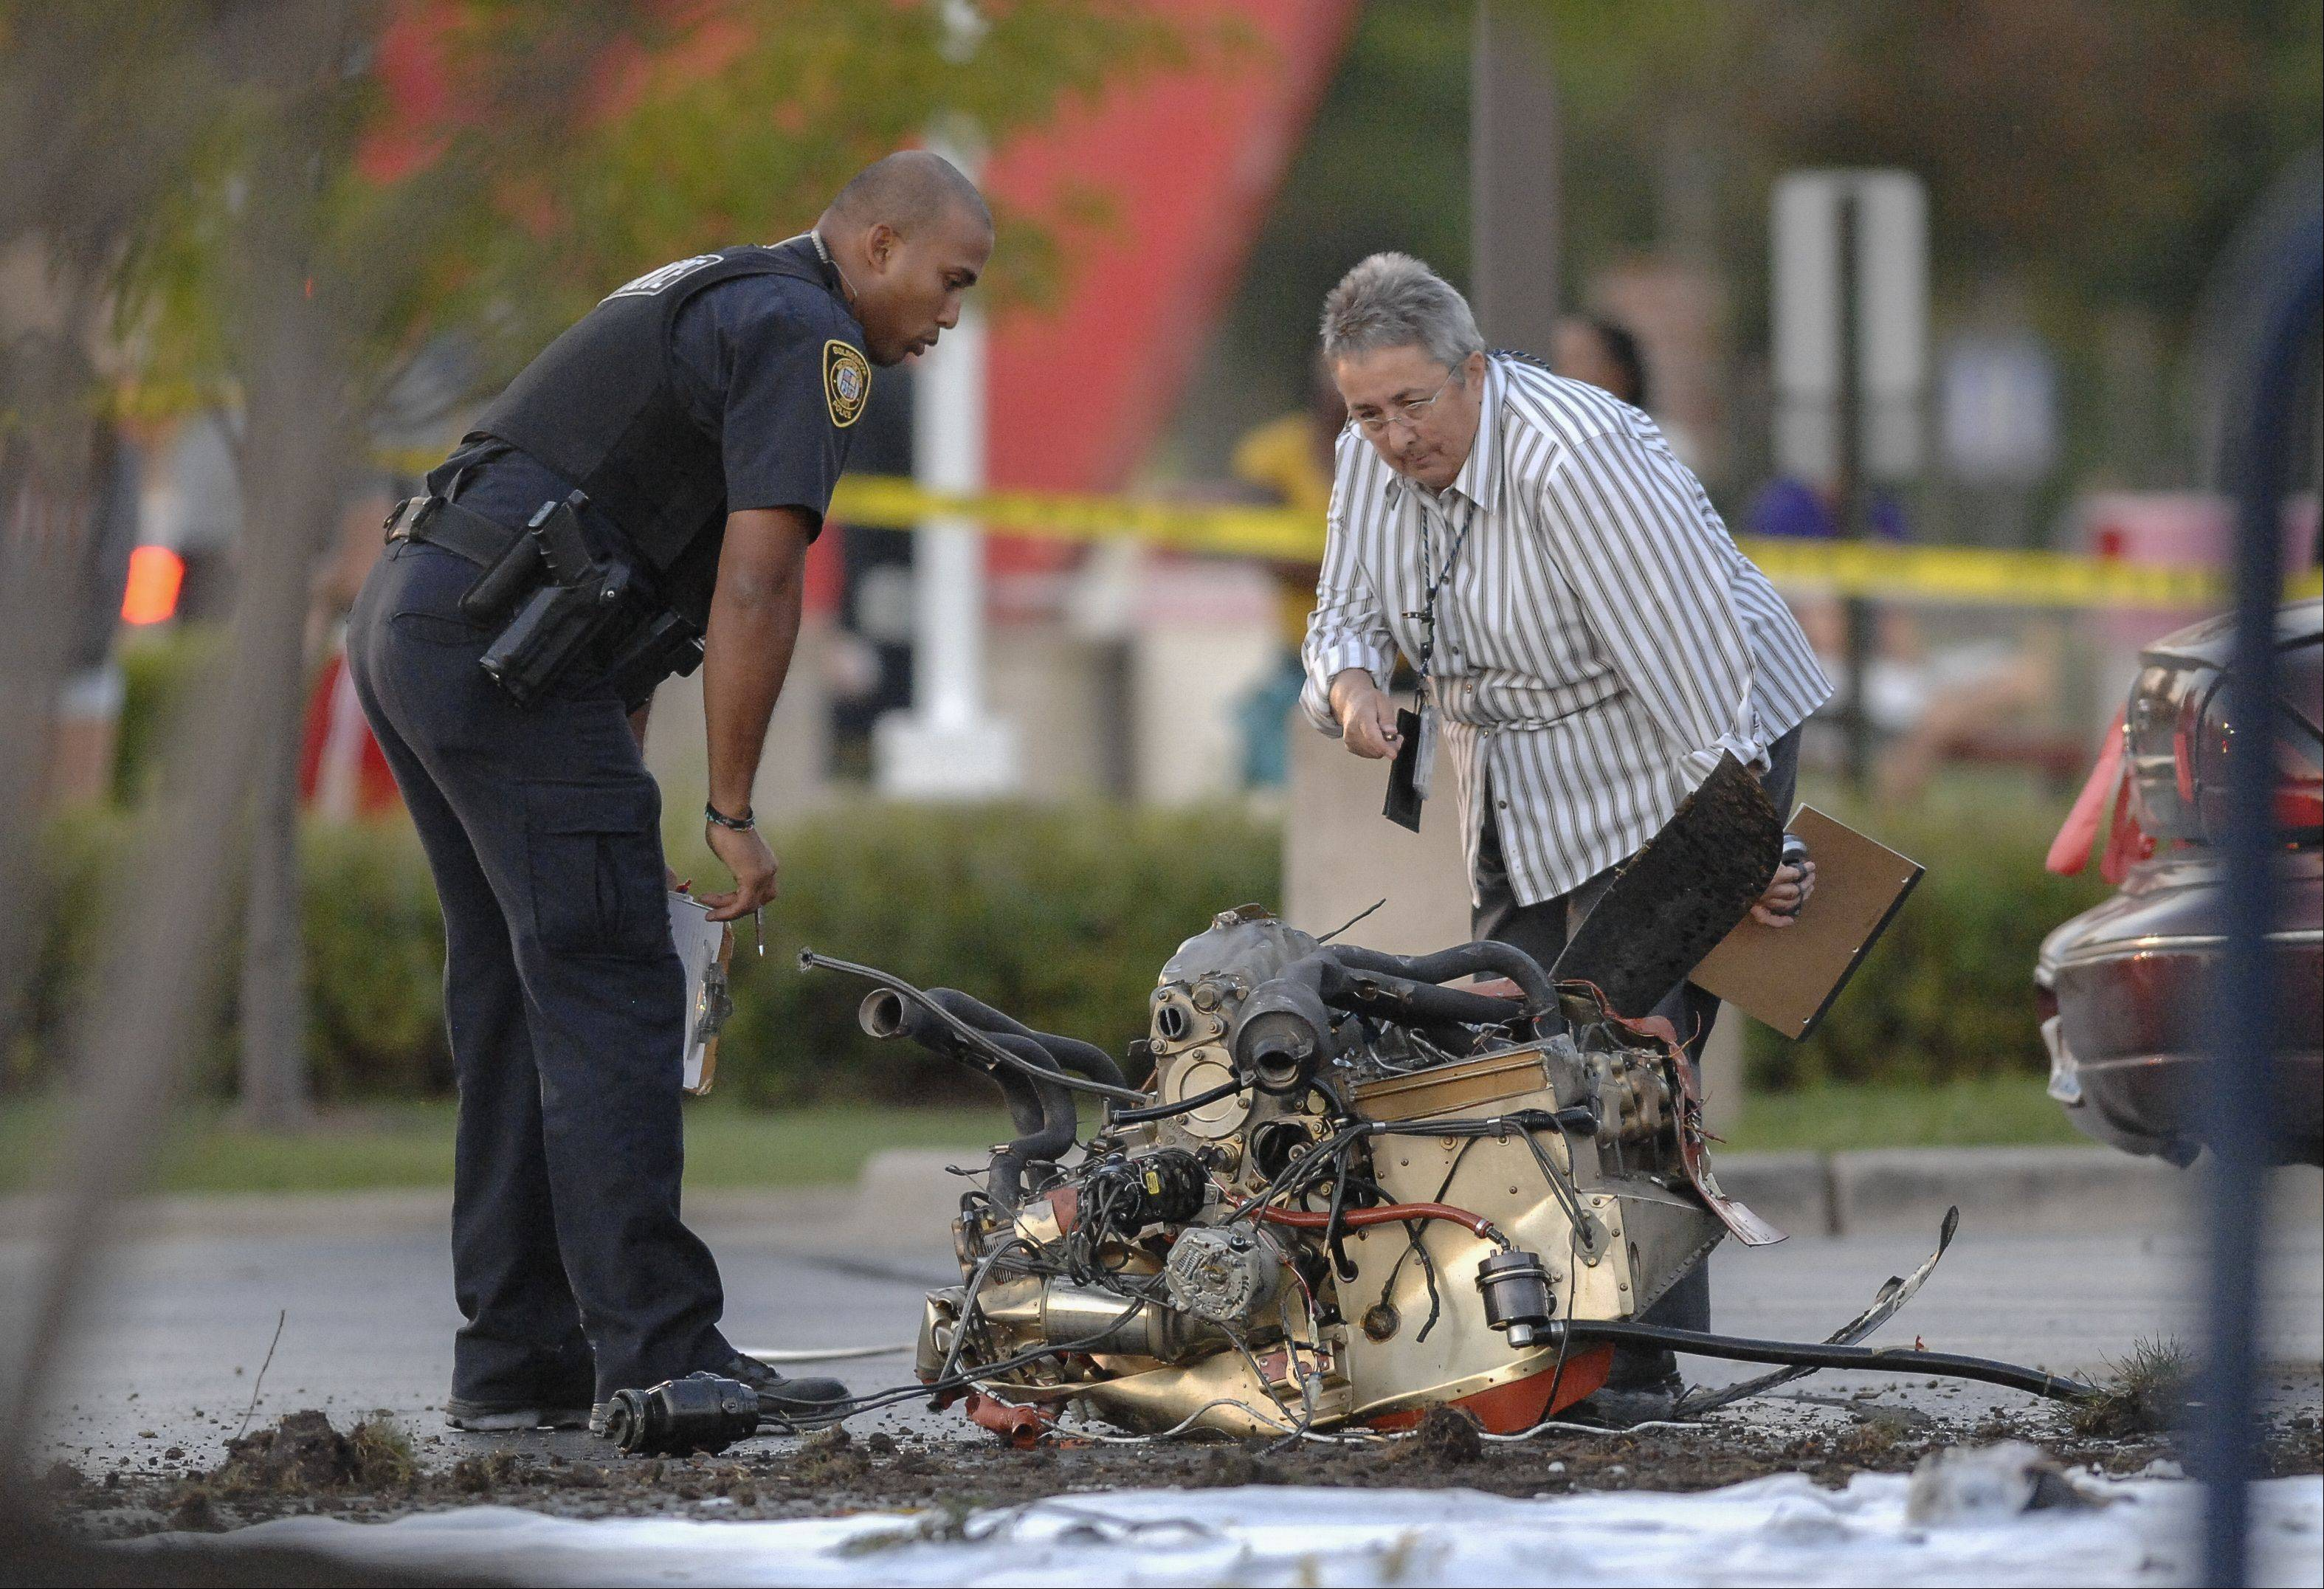 Investigators examine the site of a plane crash Wednesday in the parking lot of a Chase bank on Weber Road near Clow International Airport in Bolingbrook.